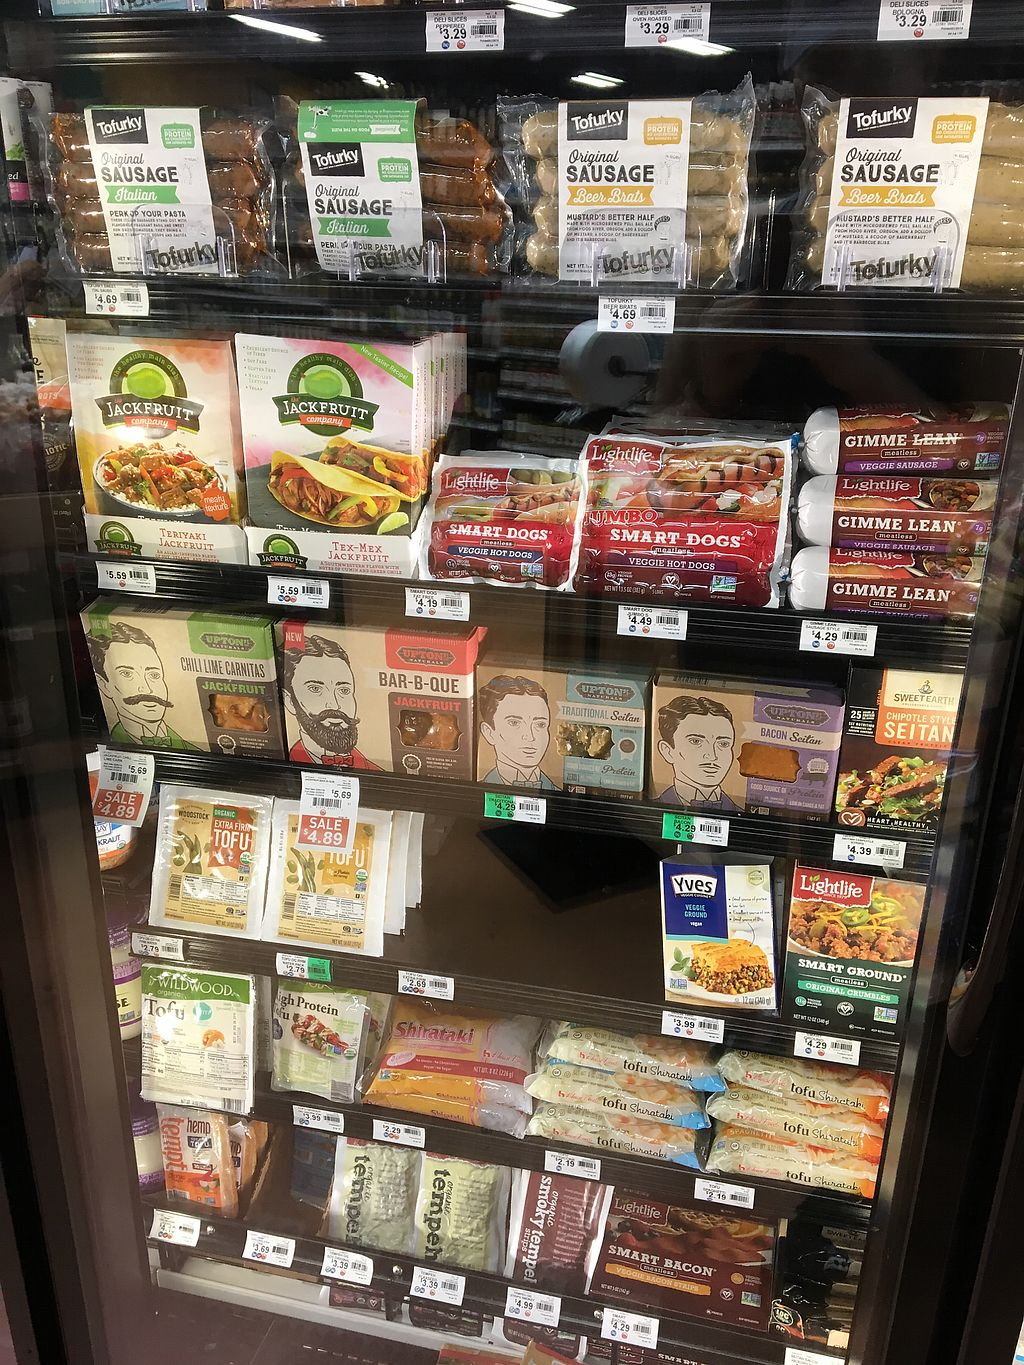 """Photo of Earth Origins Market  by <a href=""""/members/profile/LilMsVegan"""">LilMsVegan</a> <br/>Meat substitutes  <br/> February 16, 2018  - <a href='/contact/abuse/image/37317/359992'>Report</a>"""